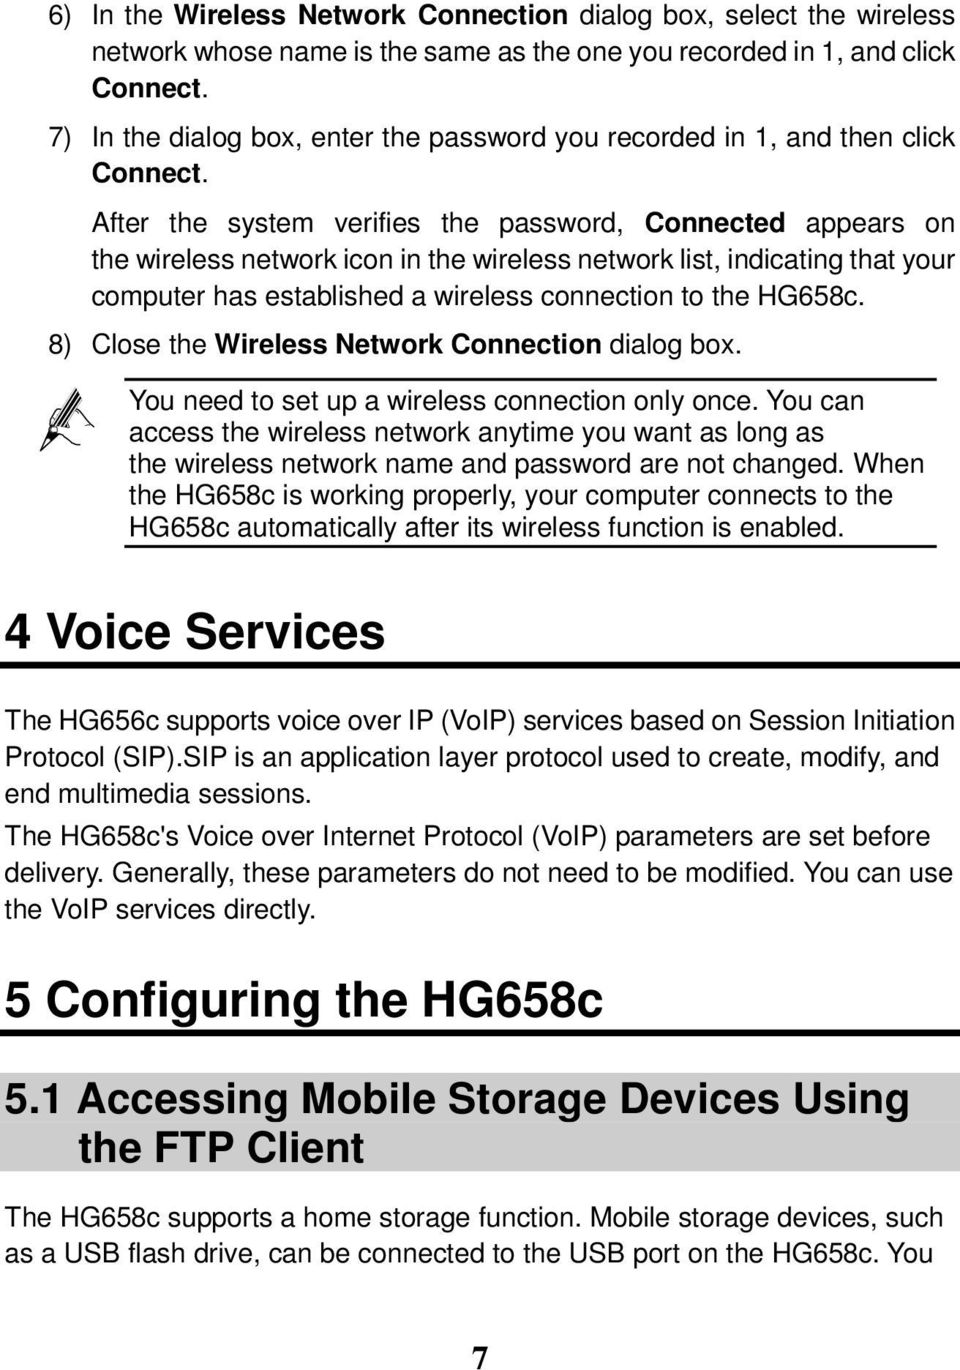 After the system verifies the password, Connected appears on the wireless network icon in the wireless network list, indicating that your computer has established a wireless connection to the HG658c.